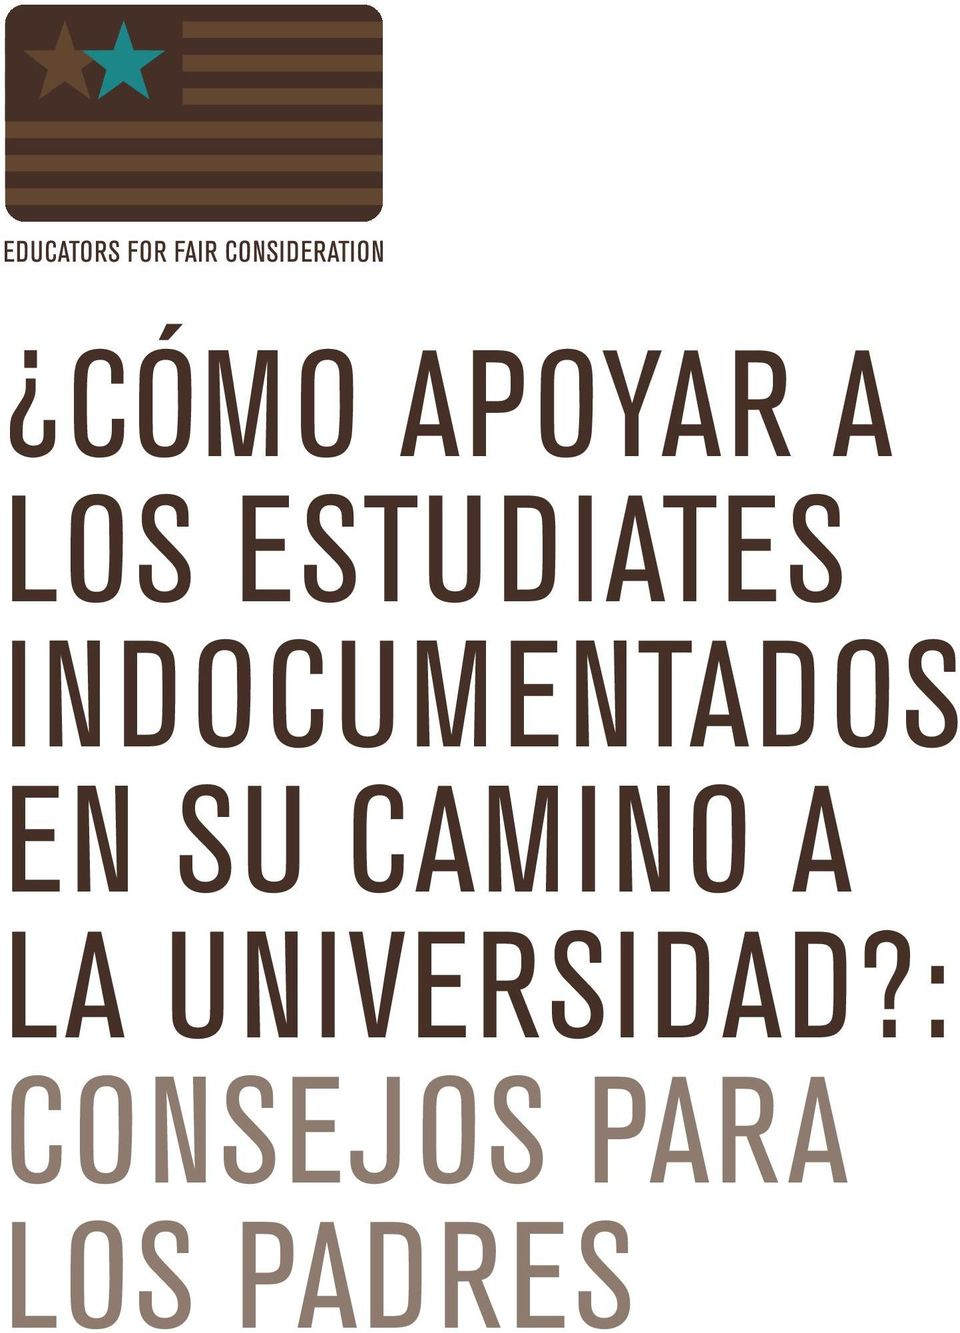 INDOCUMENTADOS EN SU